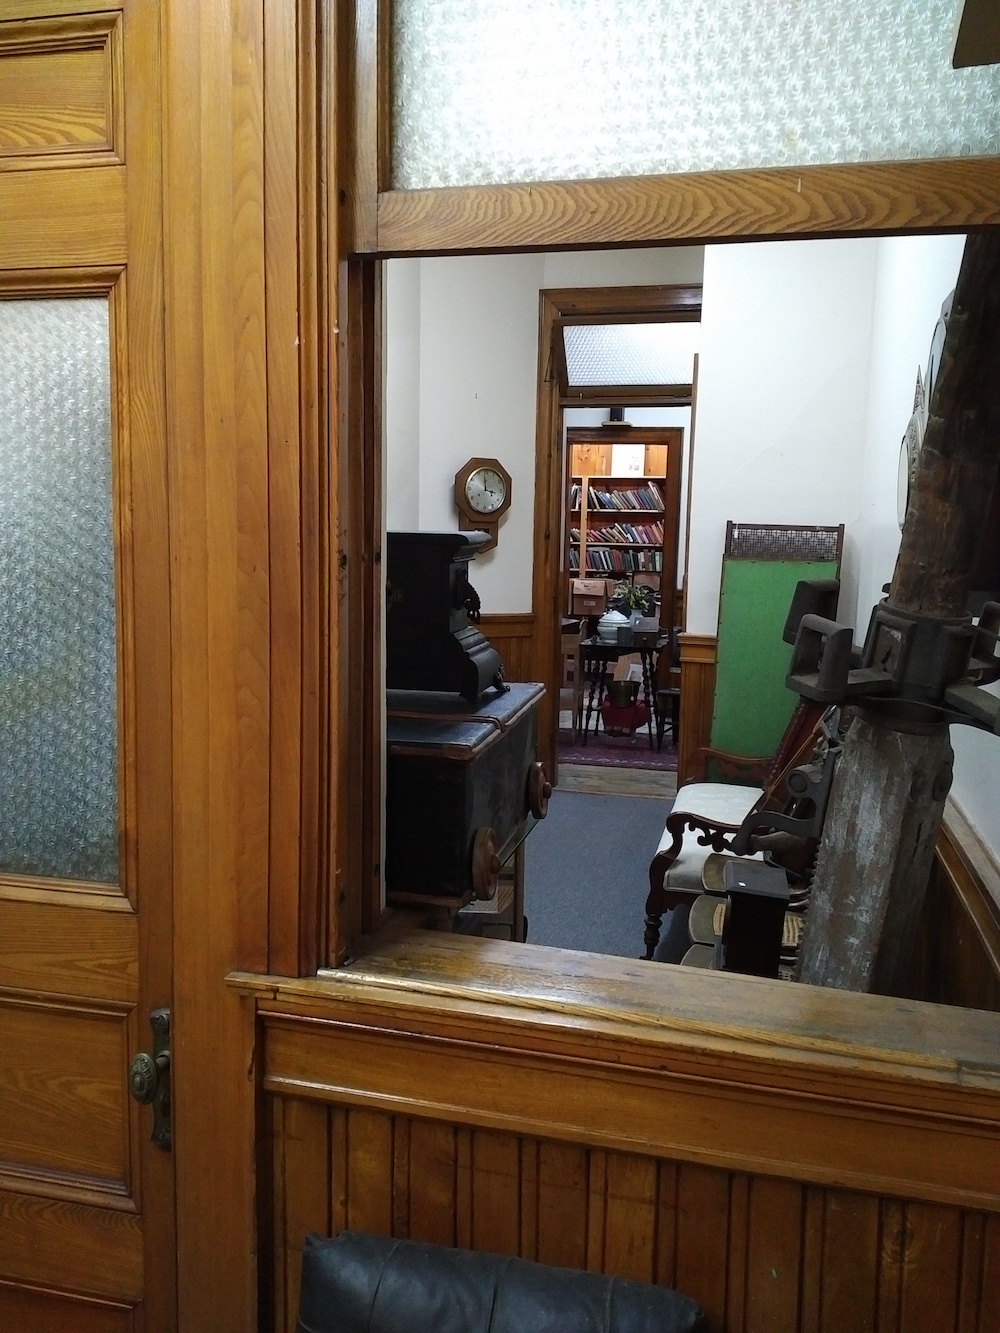 Peeking through the window into the next room of vintage treasures. . .